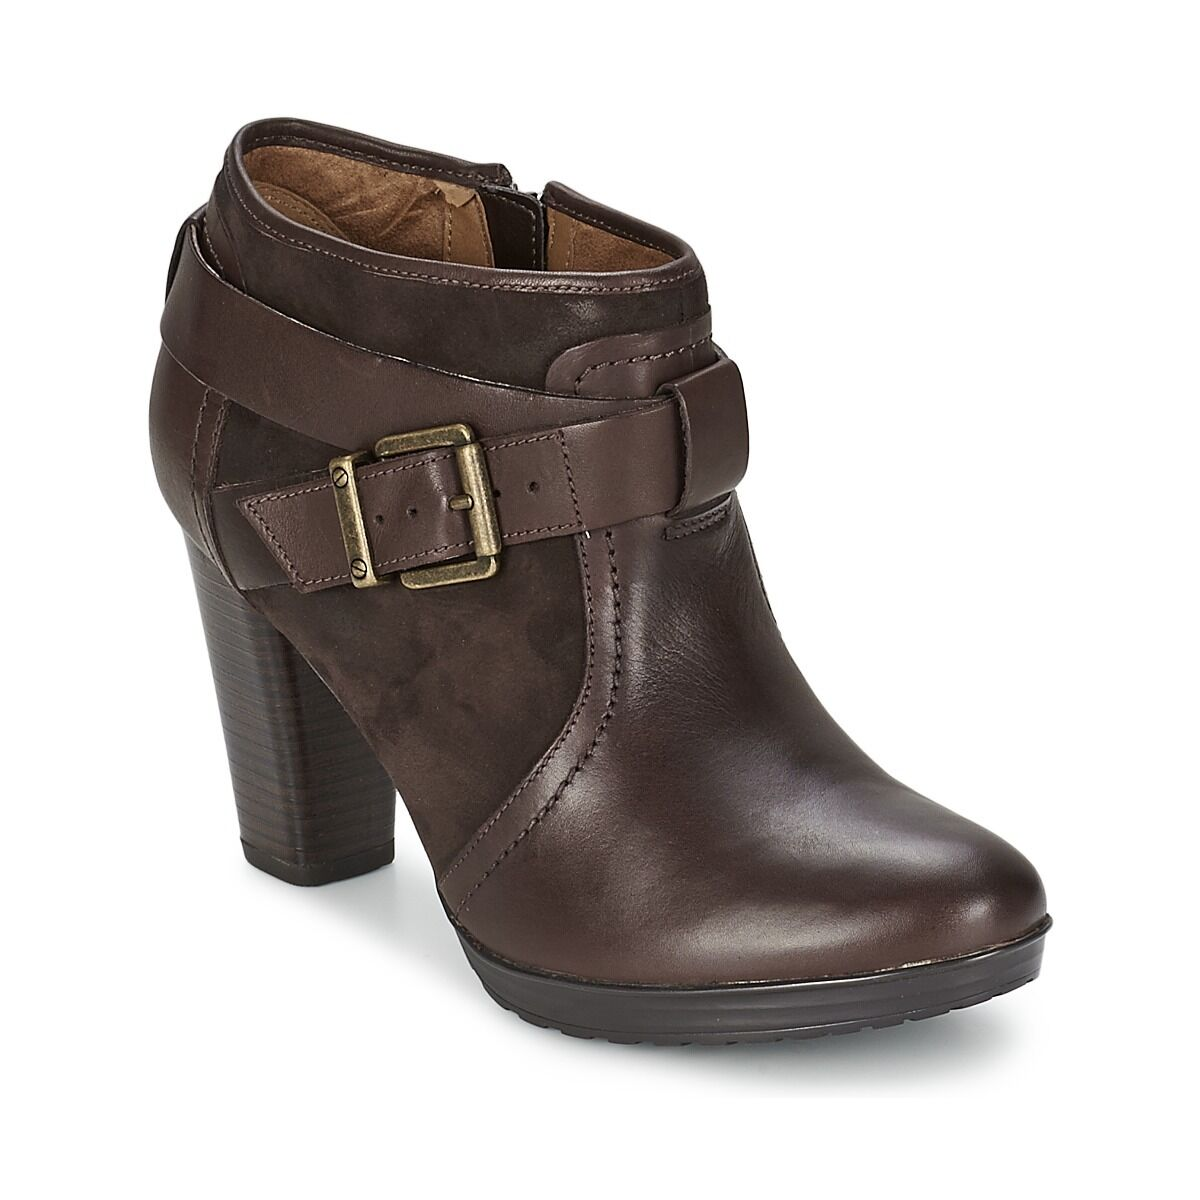 New Clarks MALPAS Dallas Marron Bottines en cuir-Taille UK 6.5D